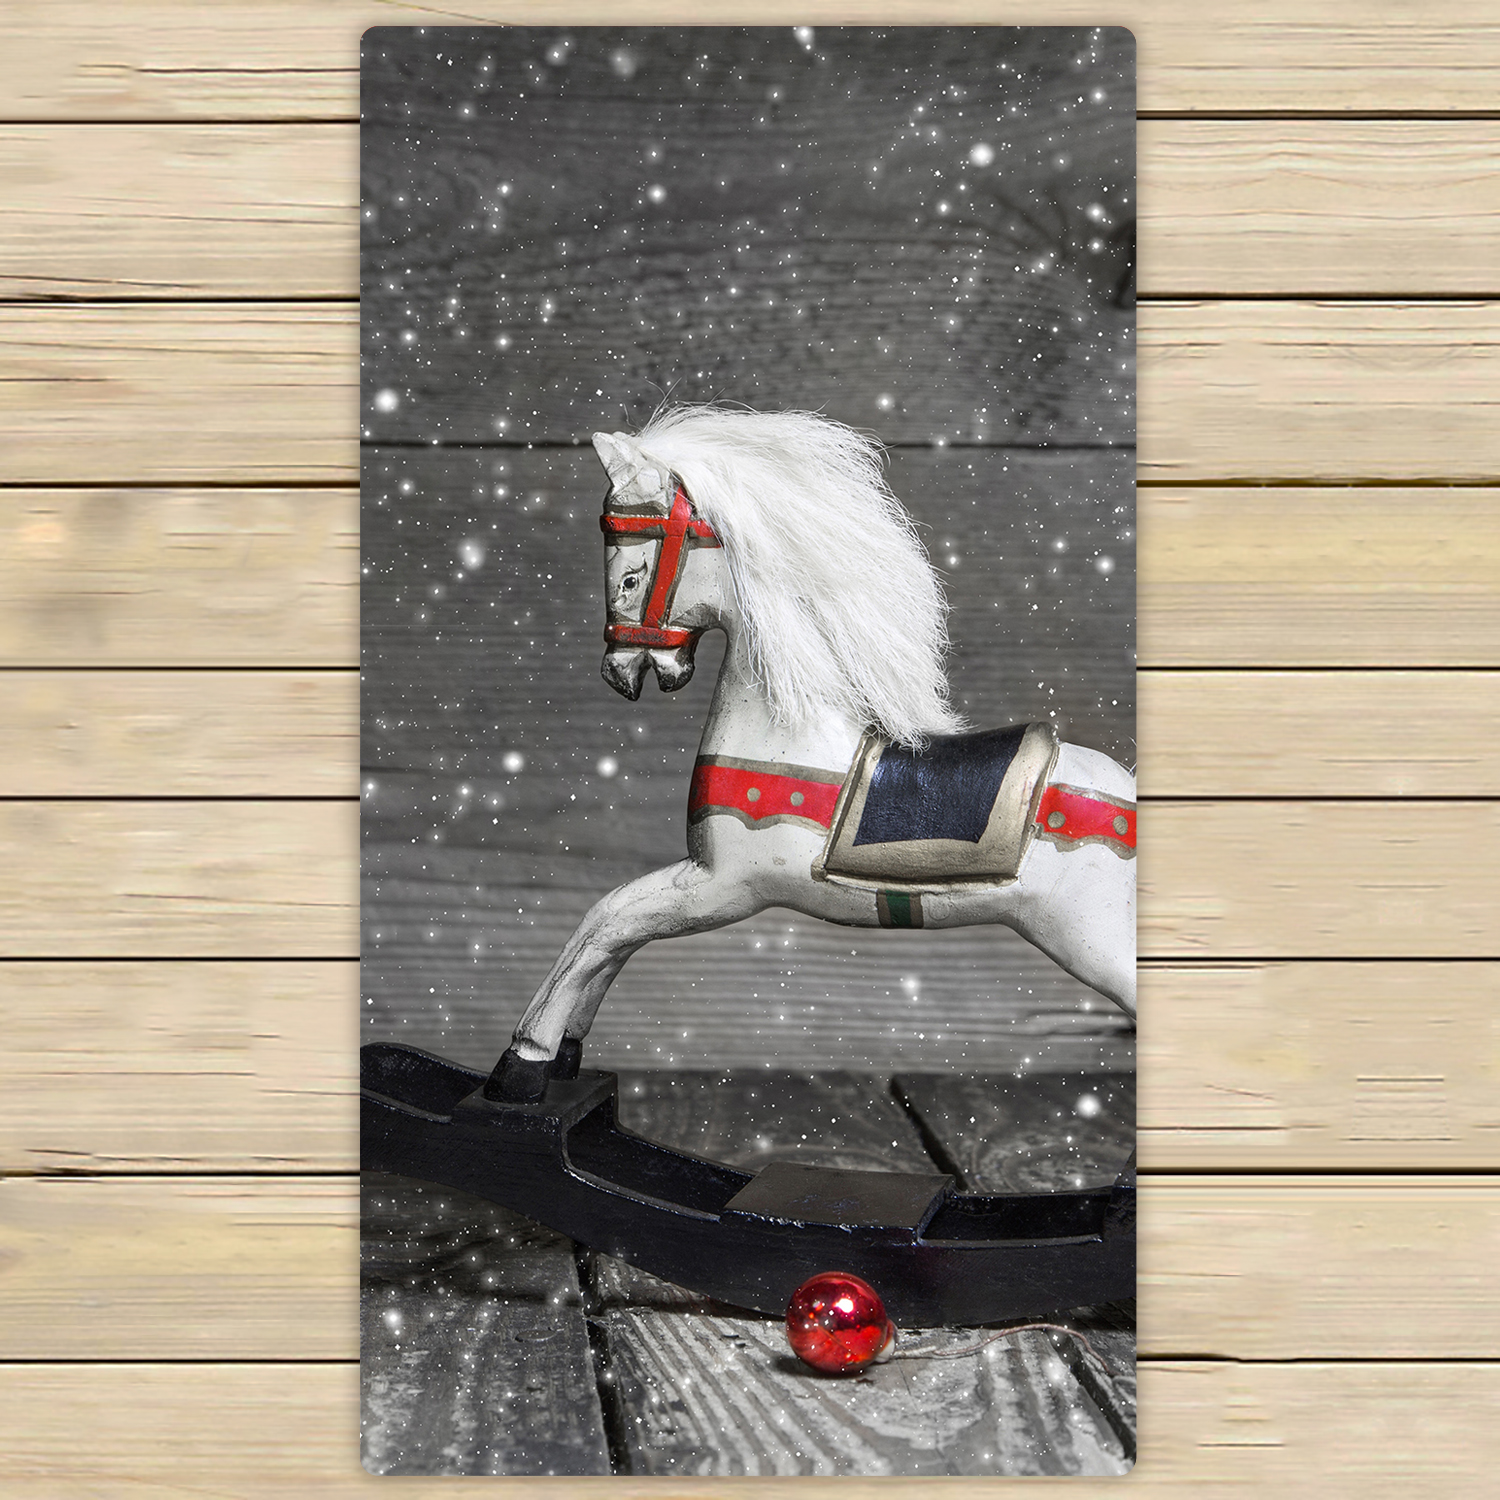 YKCG Old Wooden Horse Shabby Chic Christmas Red Balls Hand ...